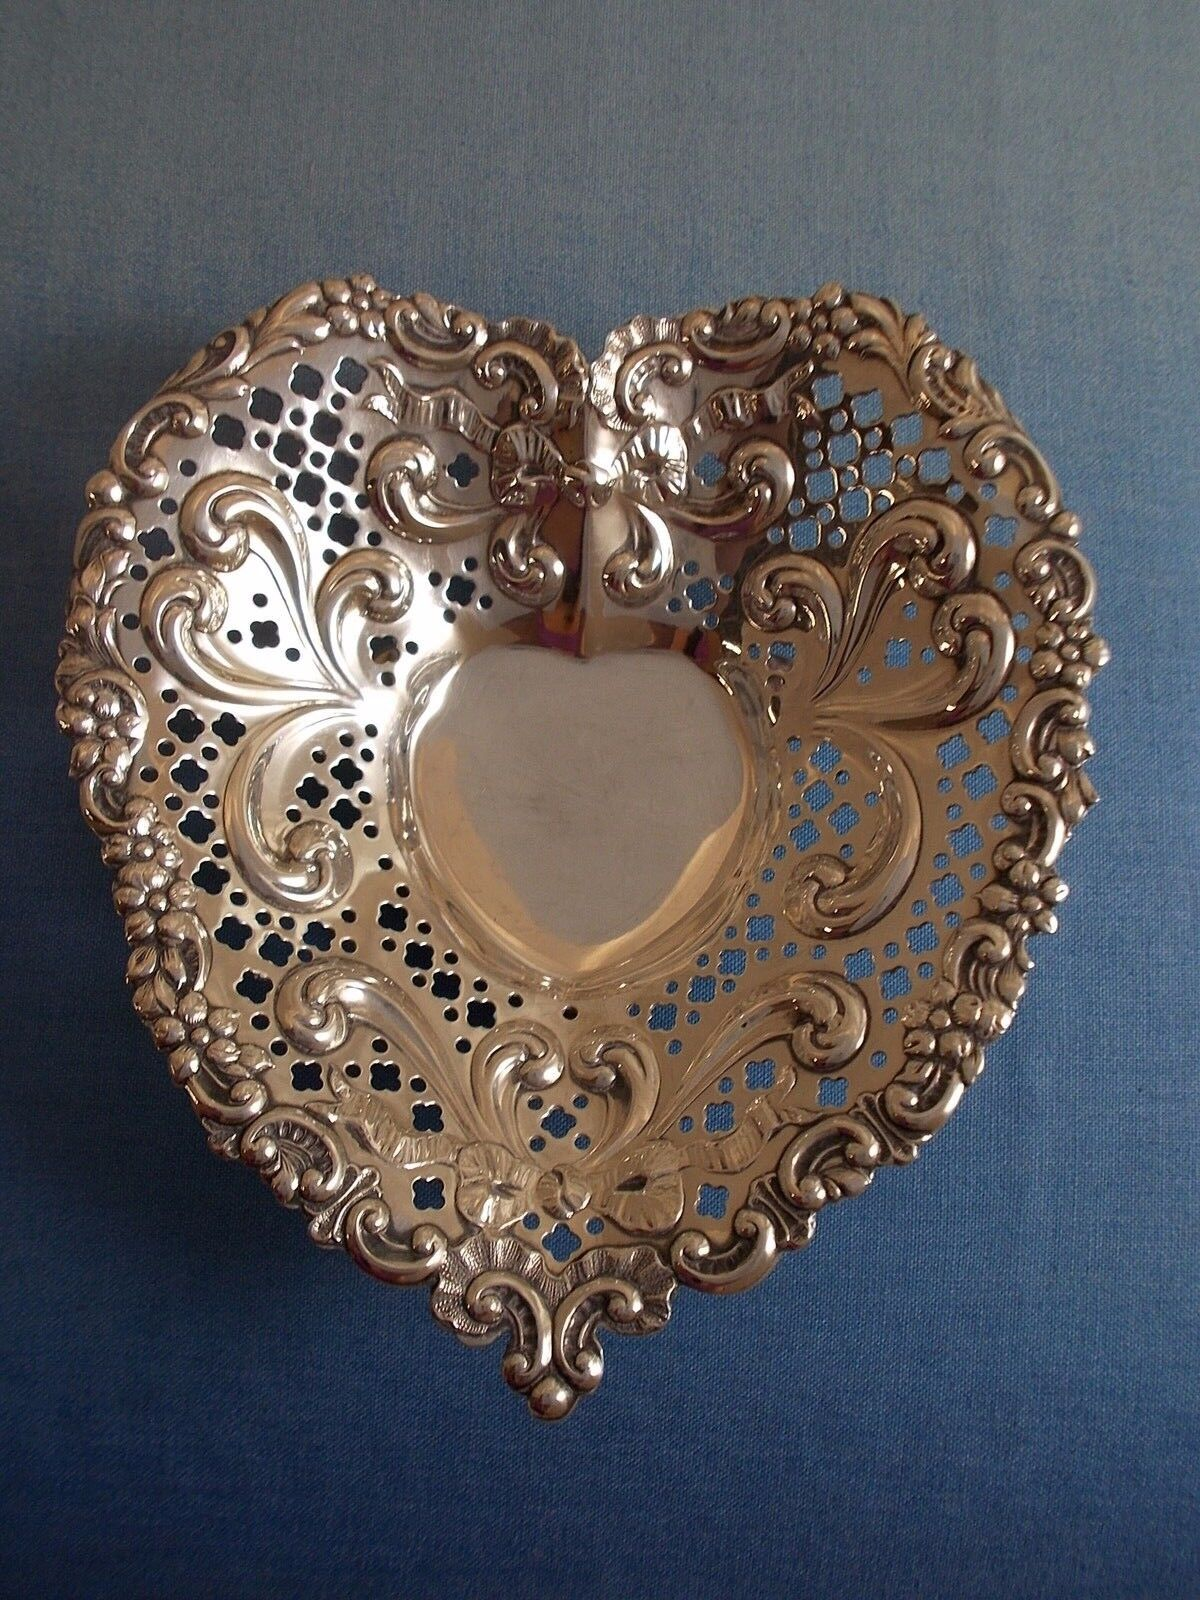 Chantilly By Gorham Sterling Silver Candy Dish Heart Shaped 966 0319 Ebay